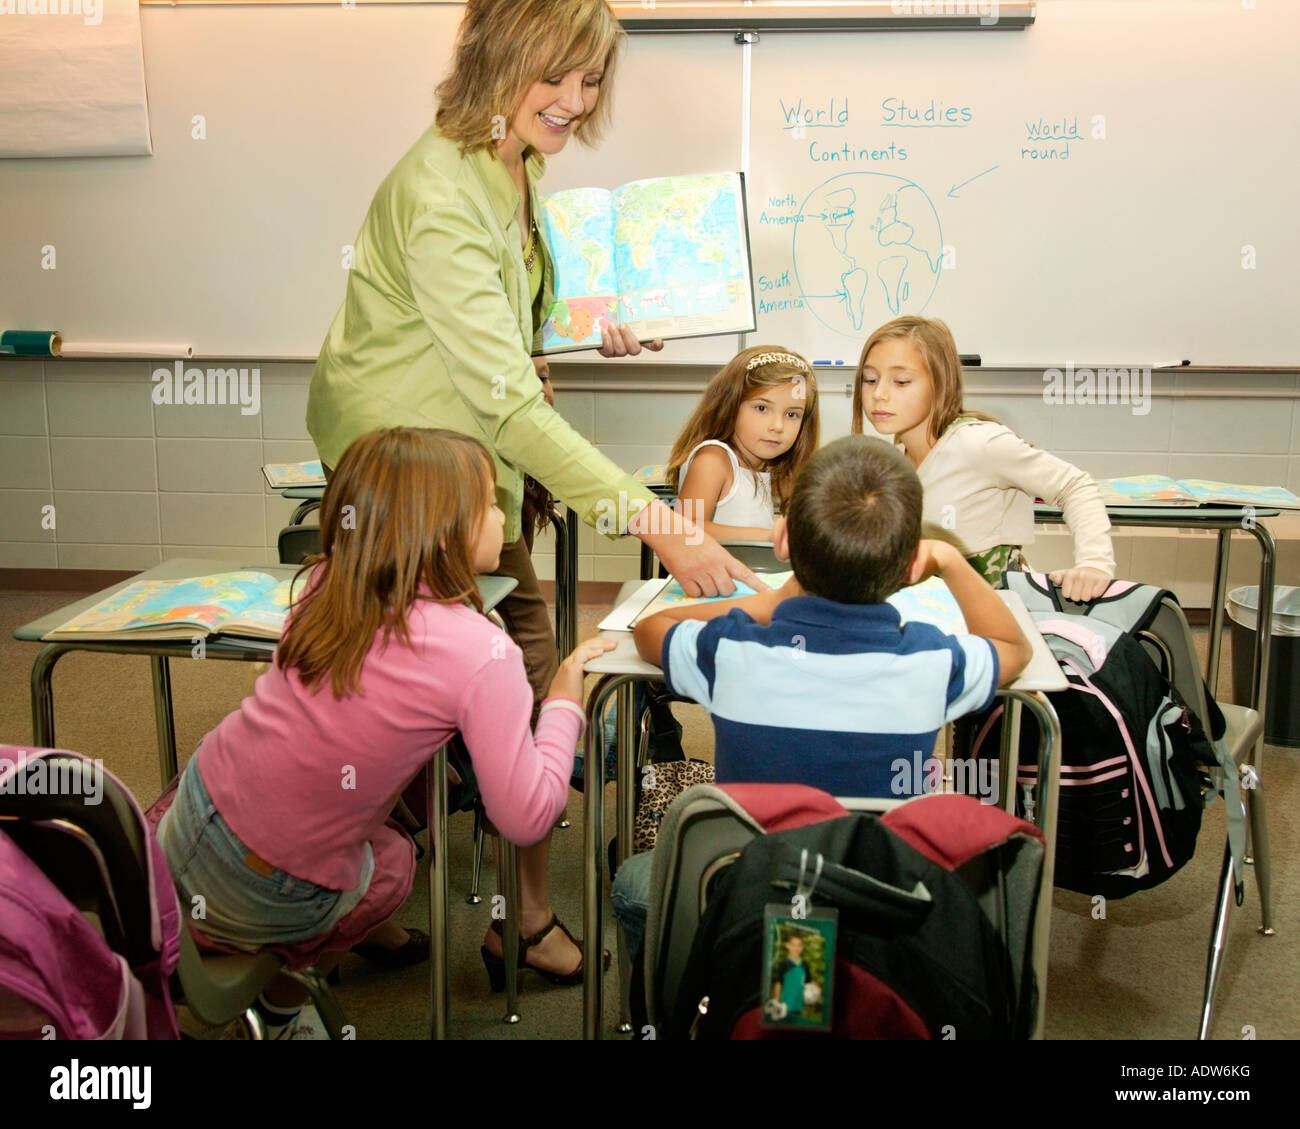 Teacher instructing in a classroom - Stock Image